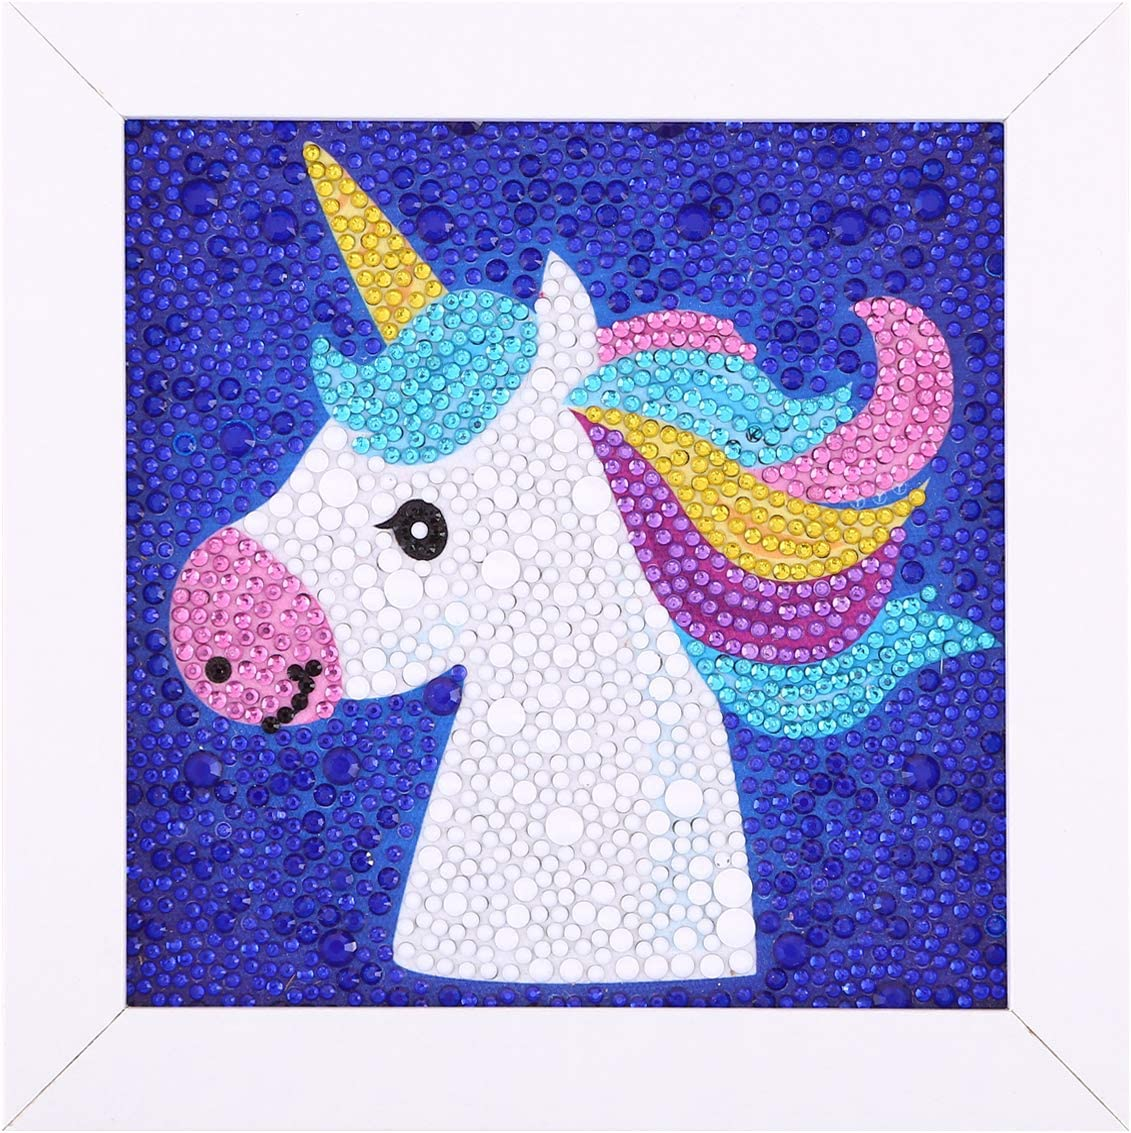 5D Crystal Diamond Painting Kits for Adults Kids and Beginners with Wooden Frame 7X9 Dream Unicorn